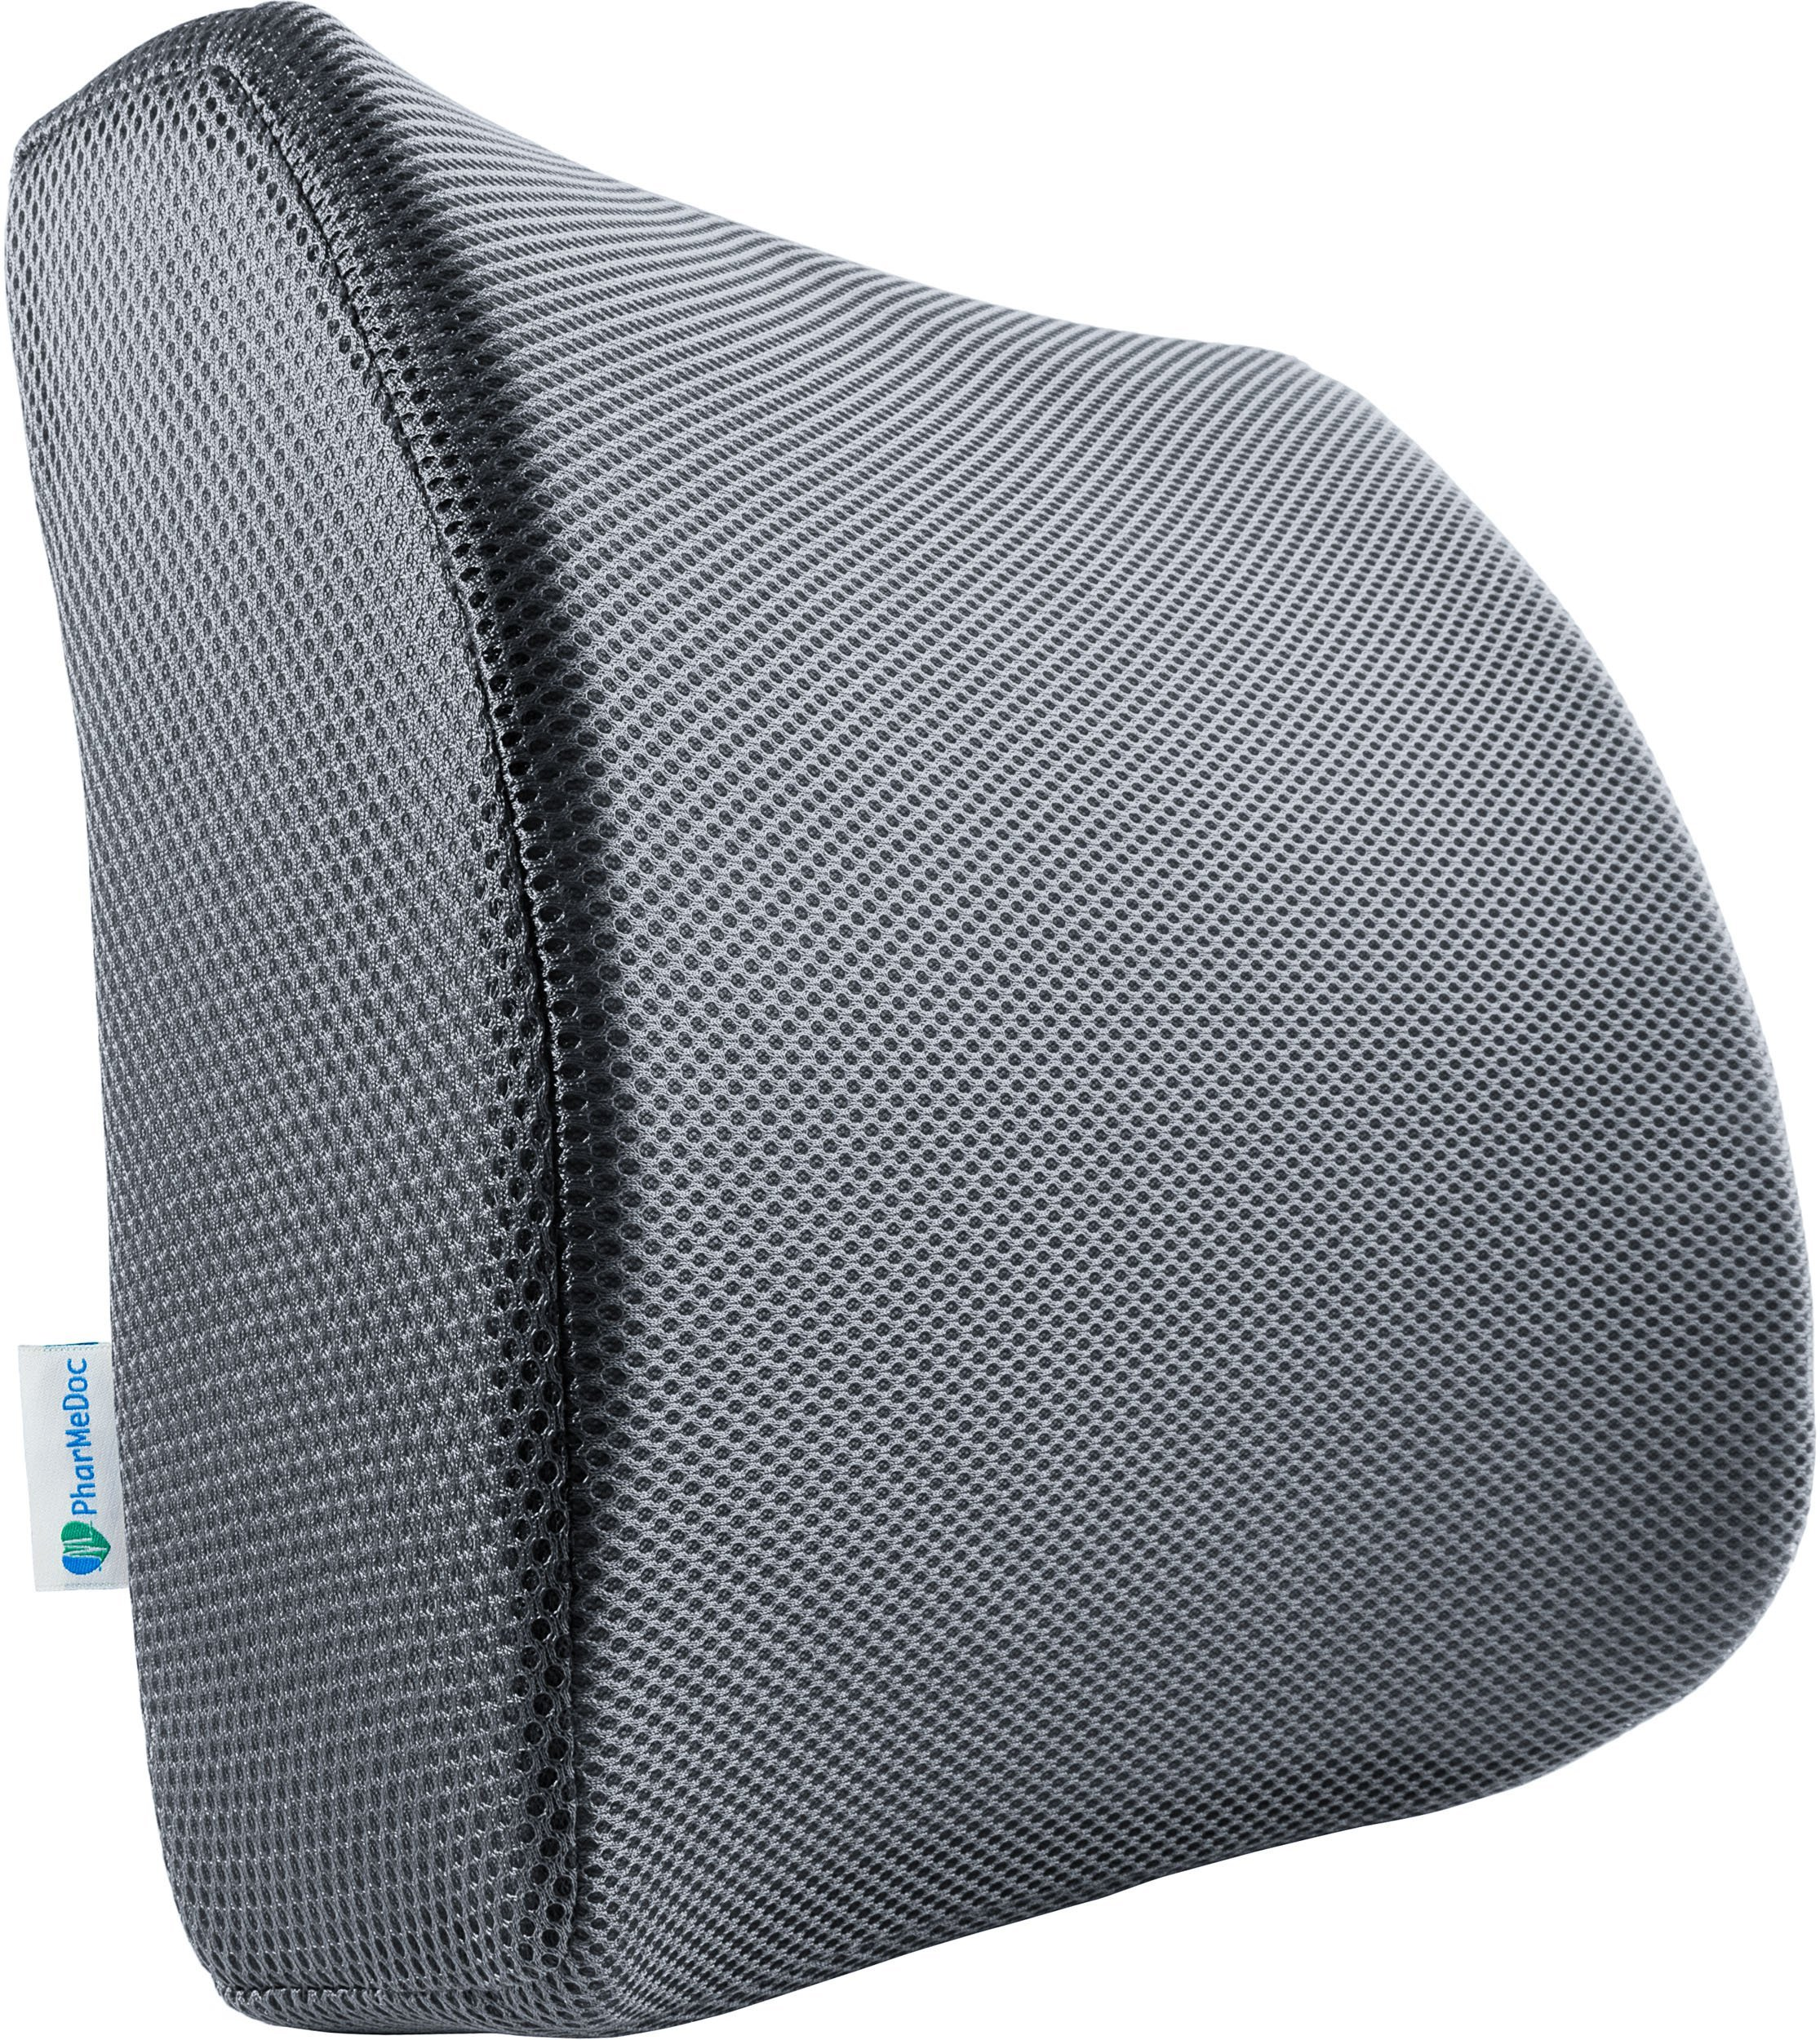 amazon com pharmedoc seat cushion for office chair car seat